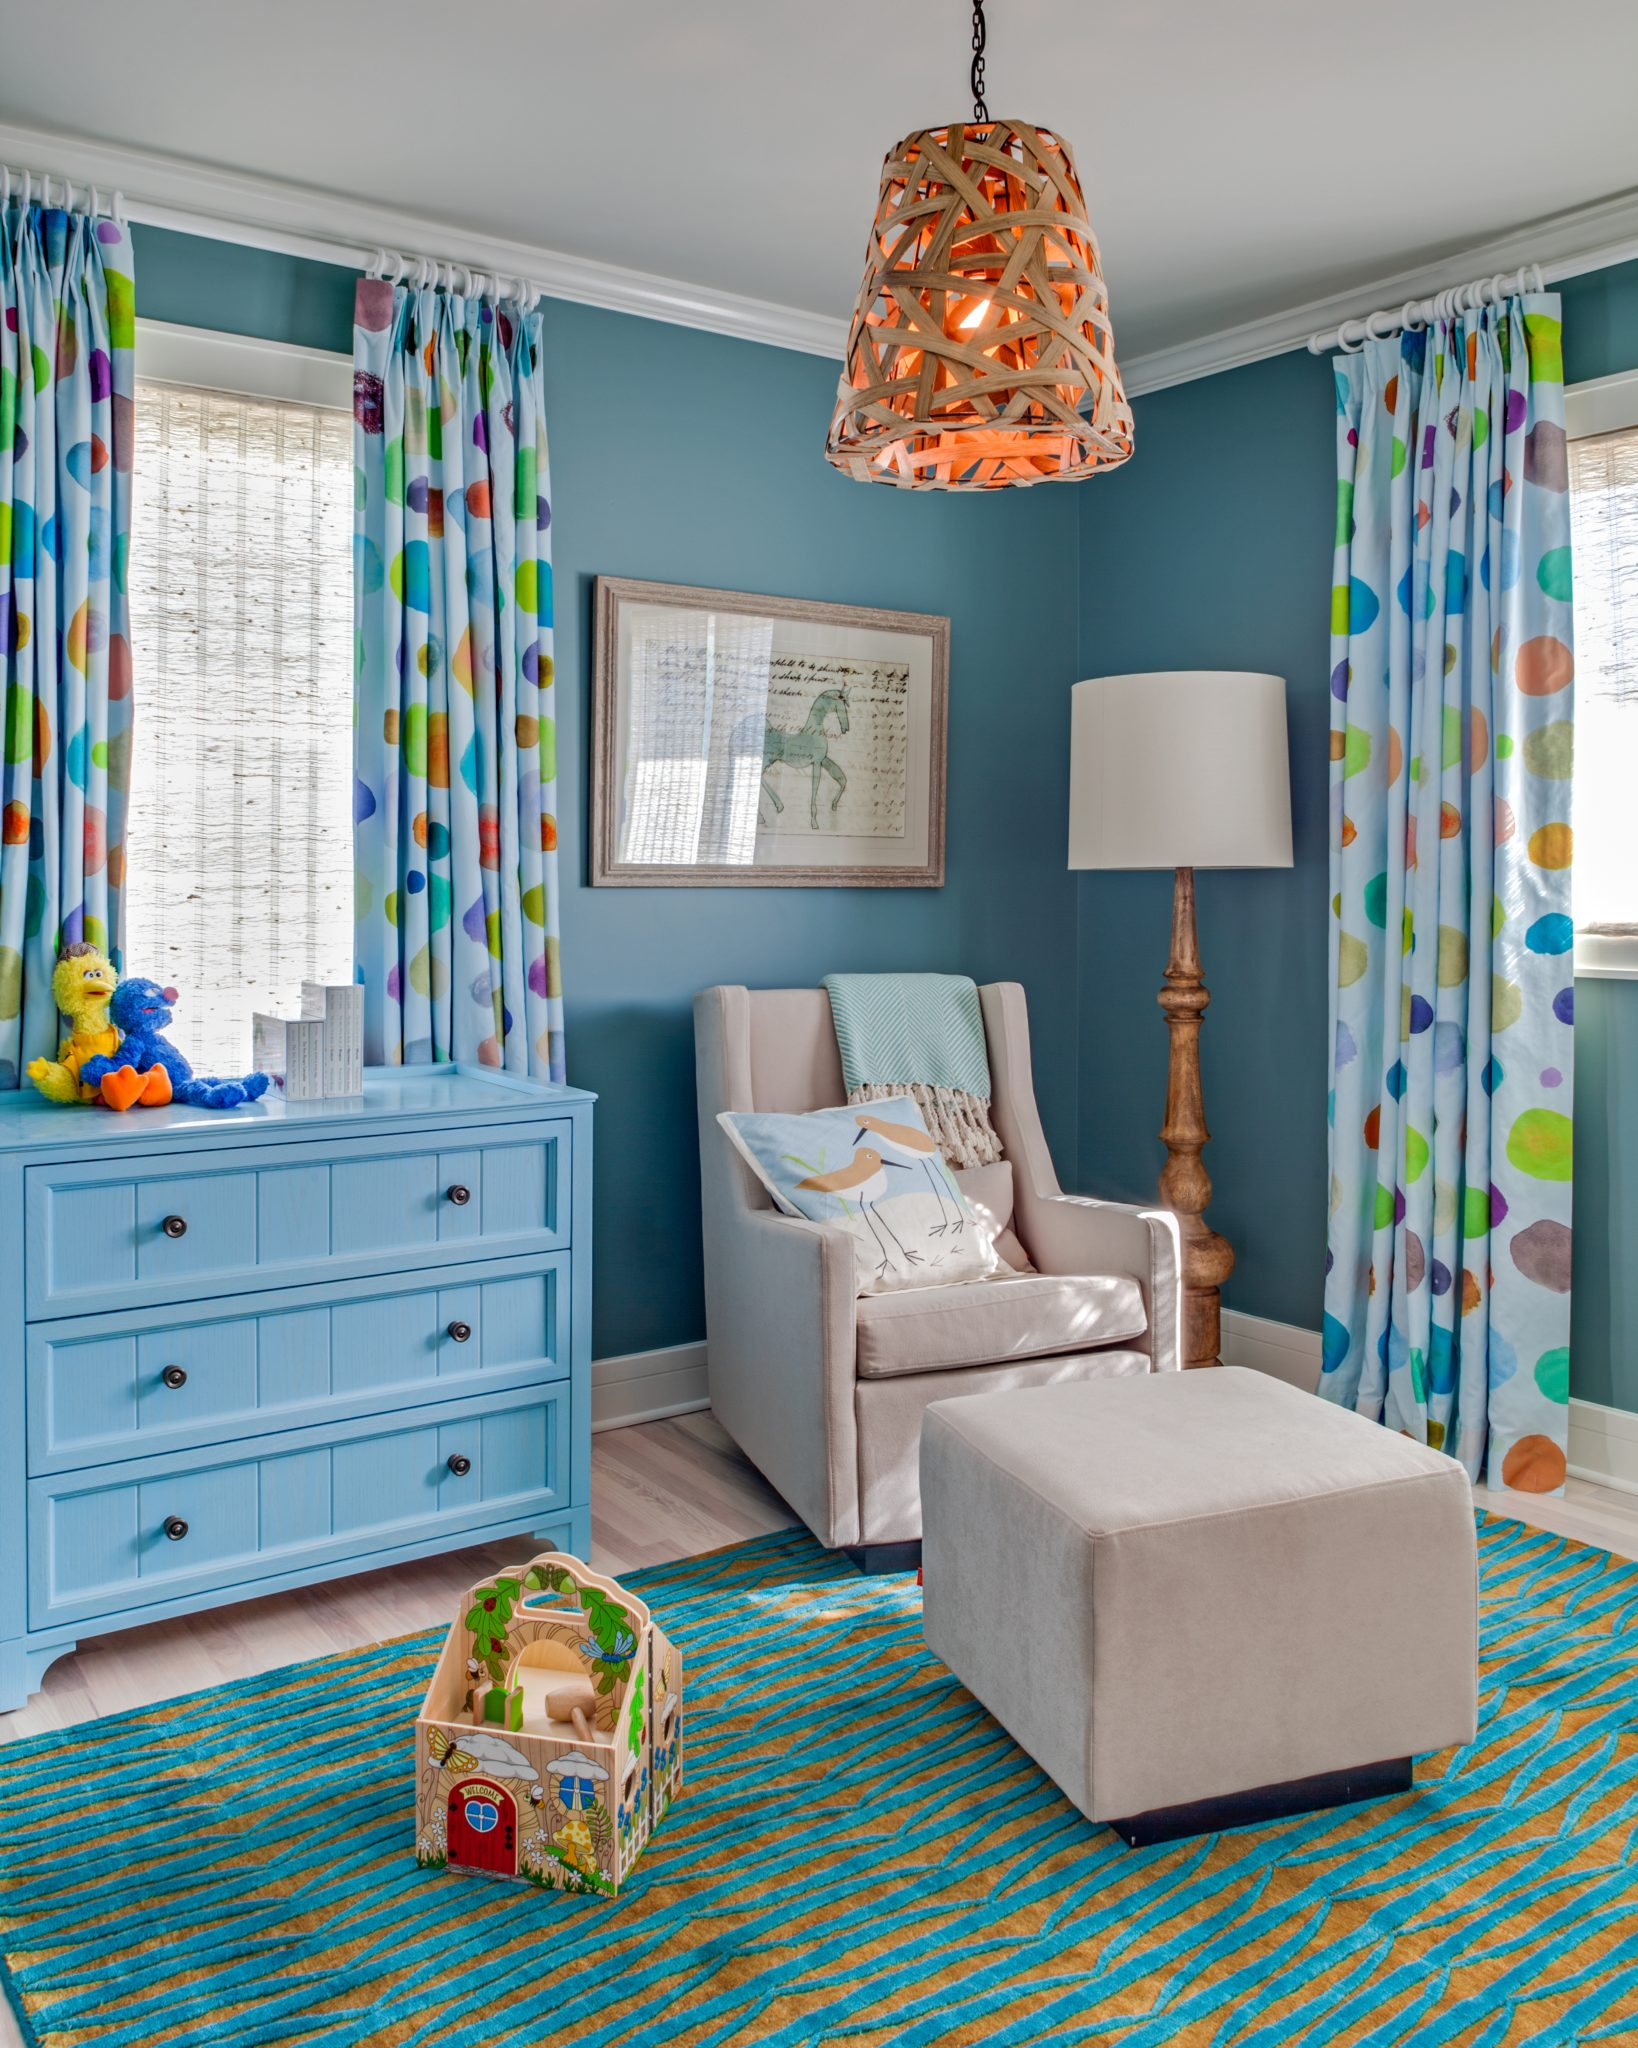 Hamptons Summer Home - Children's Room by Kati Curtis Design